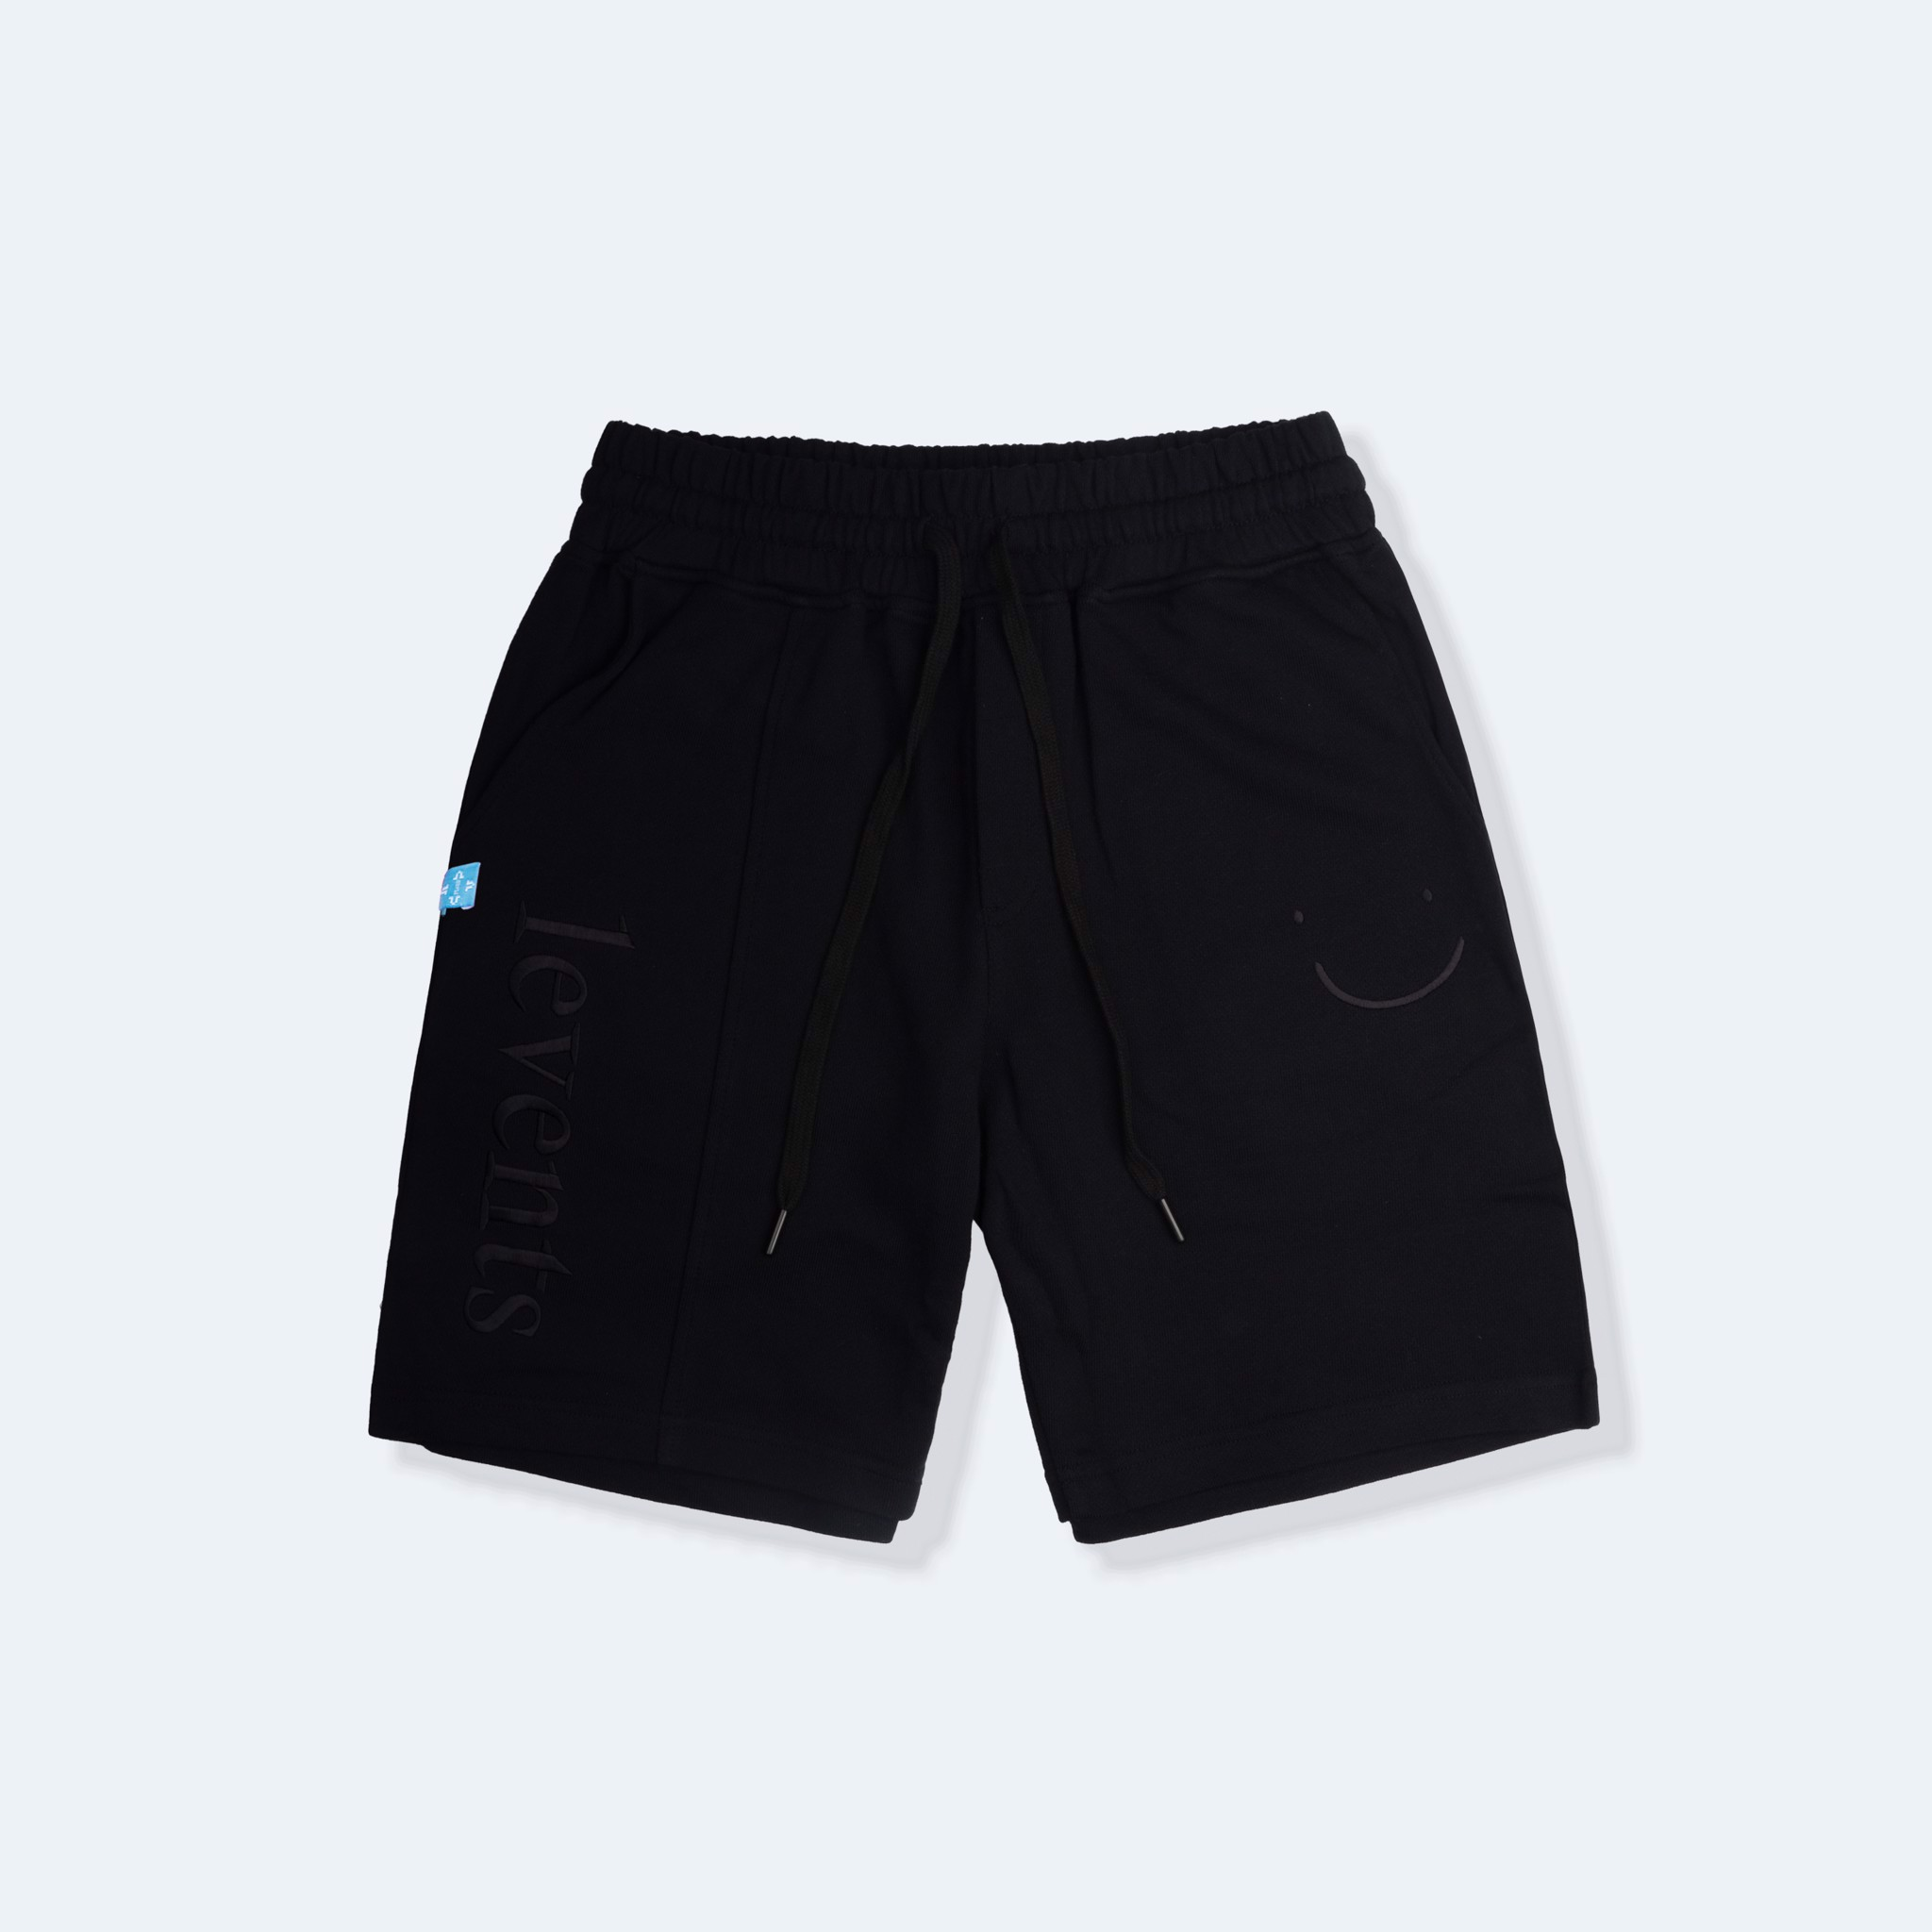 + LVS CAYA SHORTPANTS - BLACK